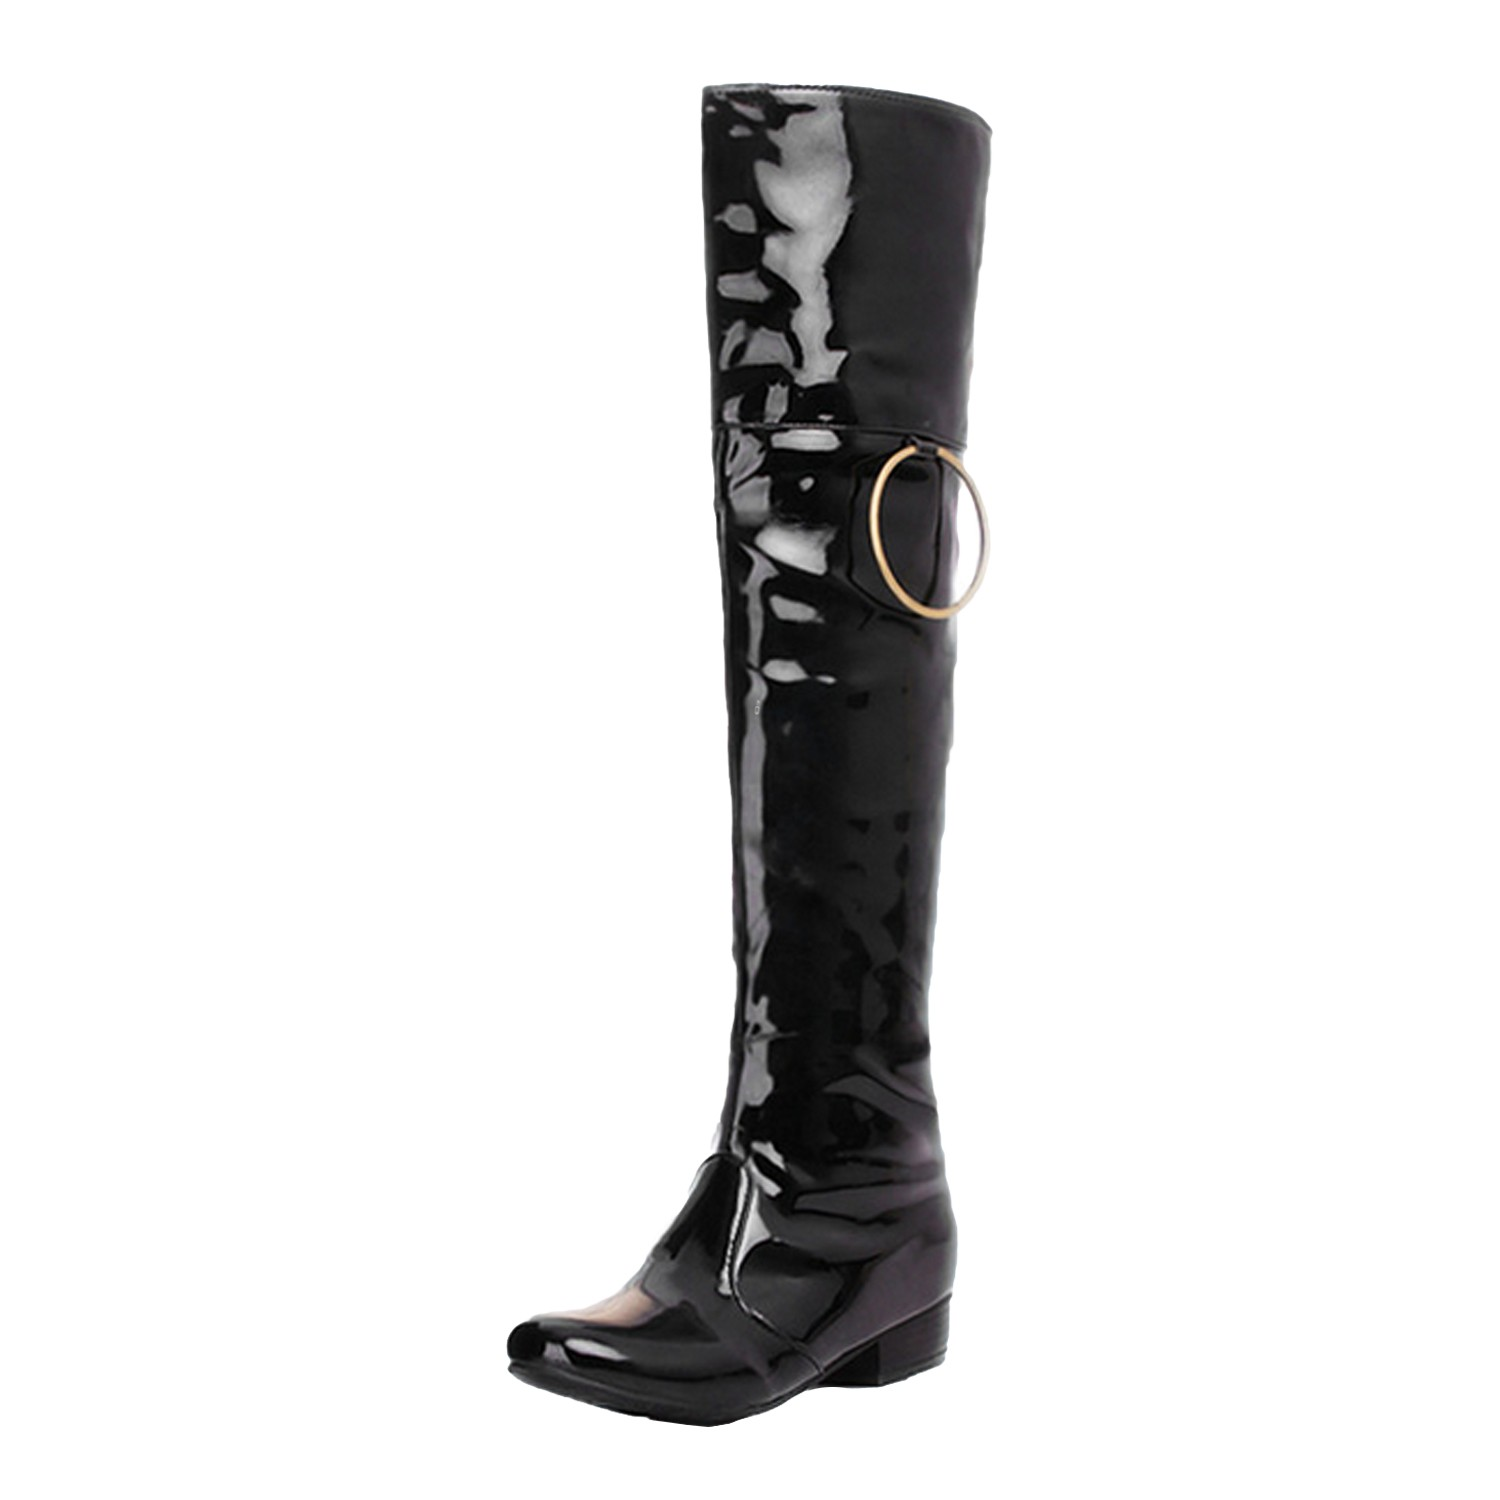 ballett flach schuhe overknee stiefel sexy lackstiefel damen herren boots rot ebay. Black Bedroom Furniture Sets. Home Design Ideas